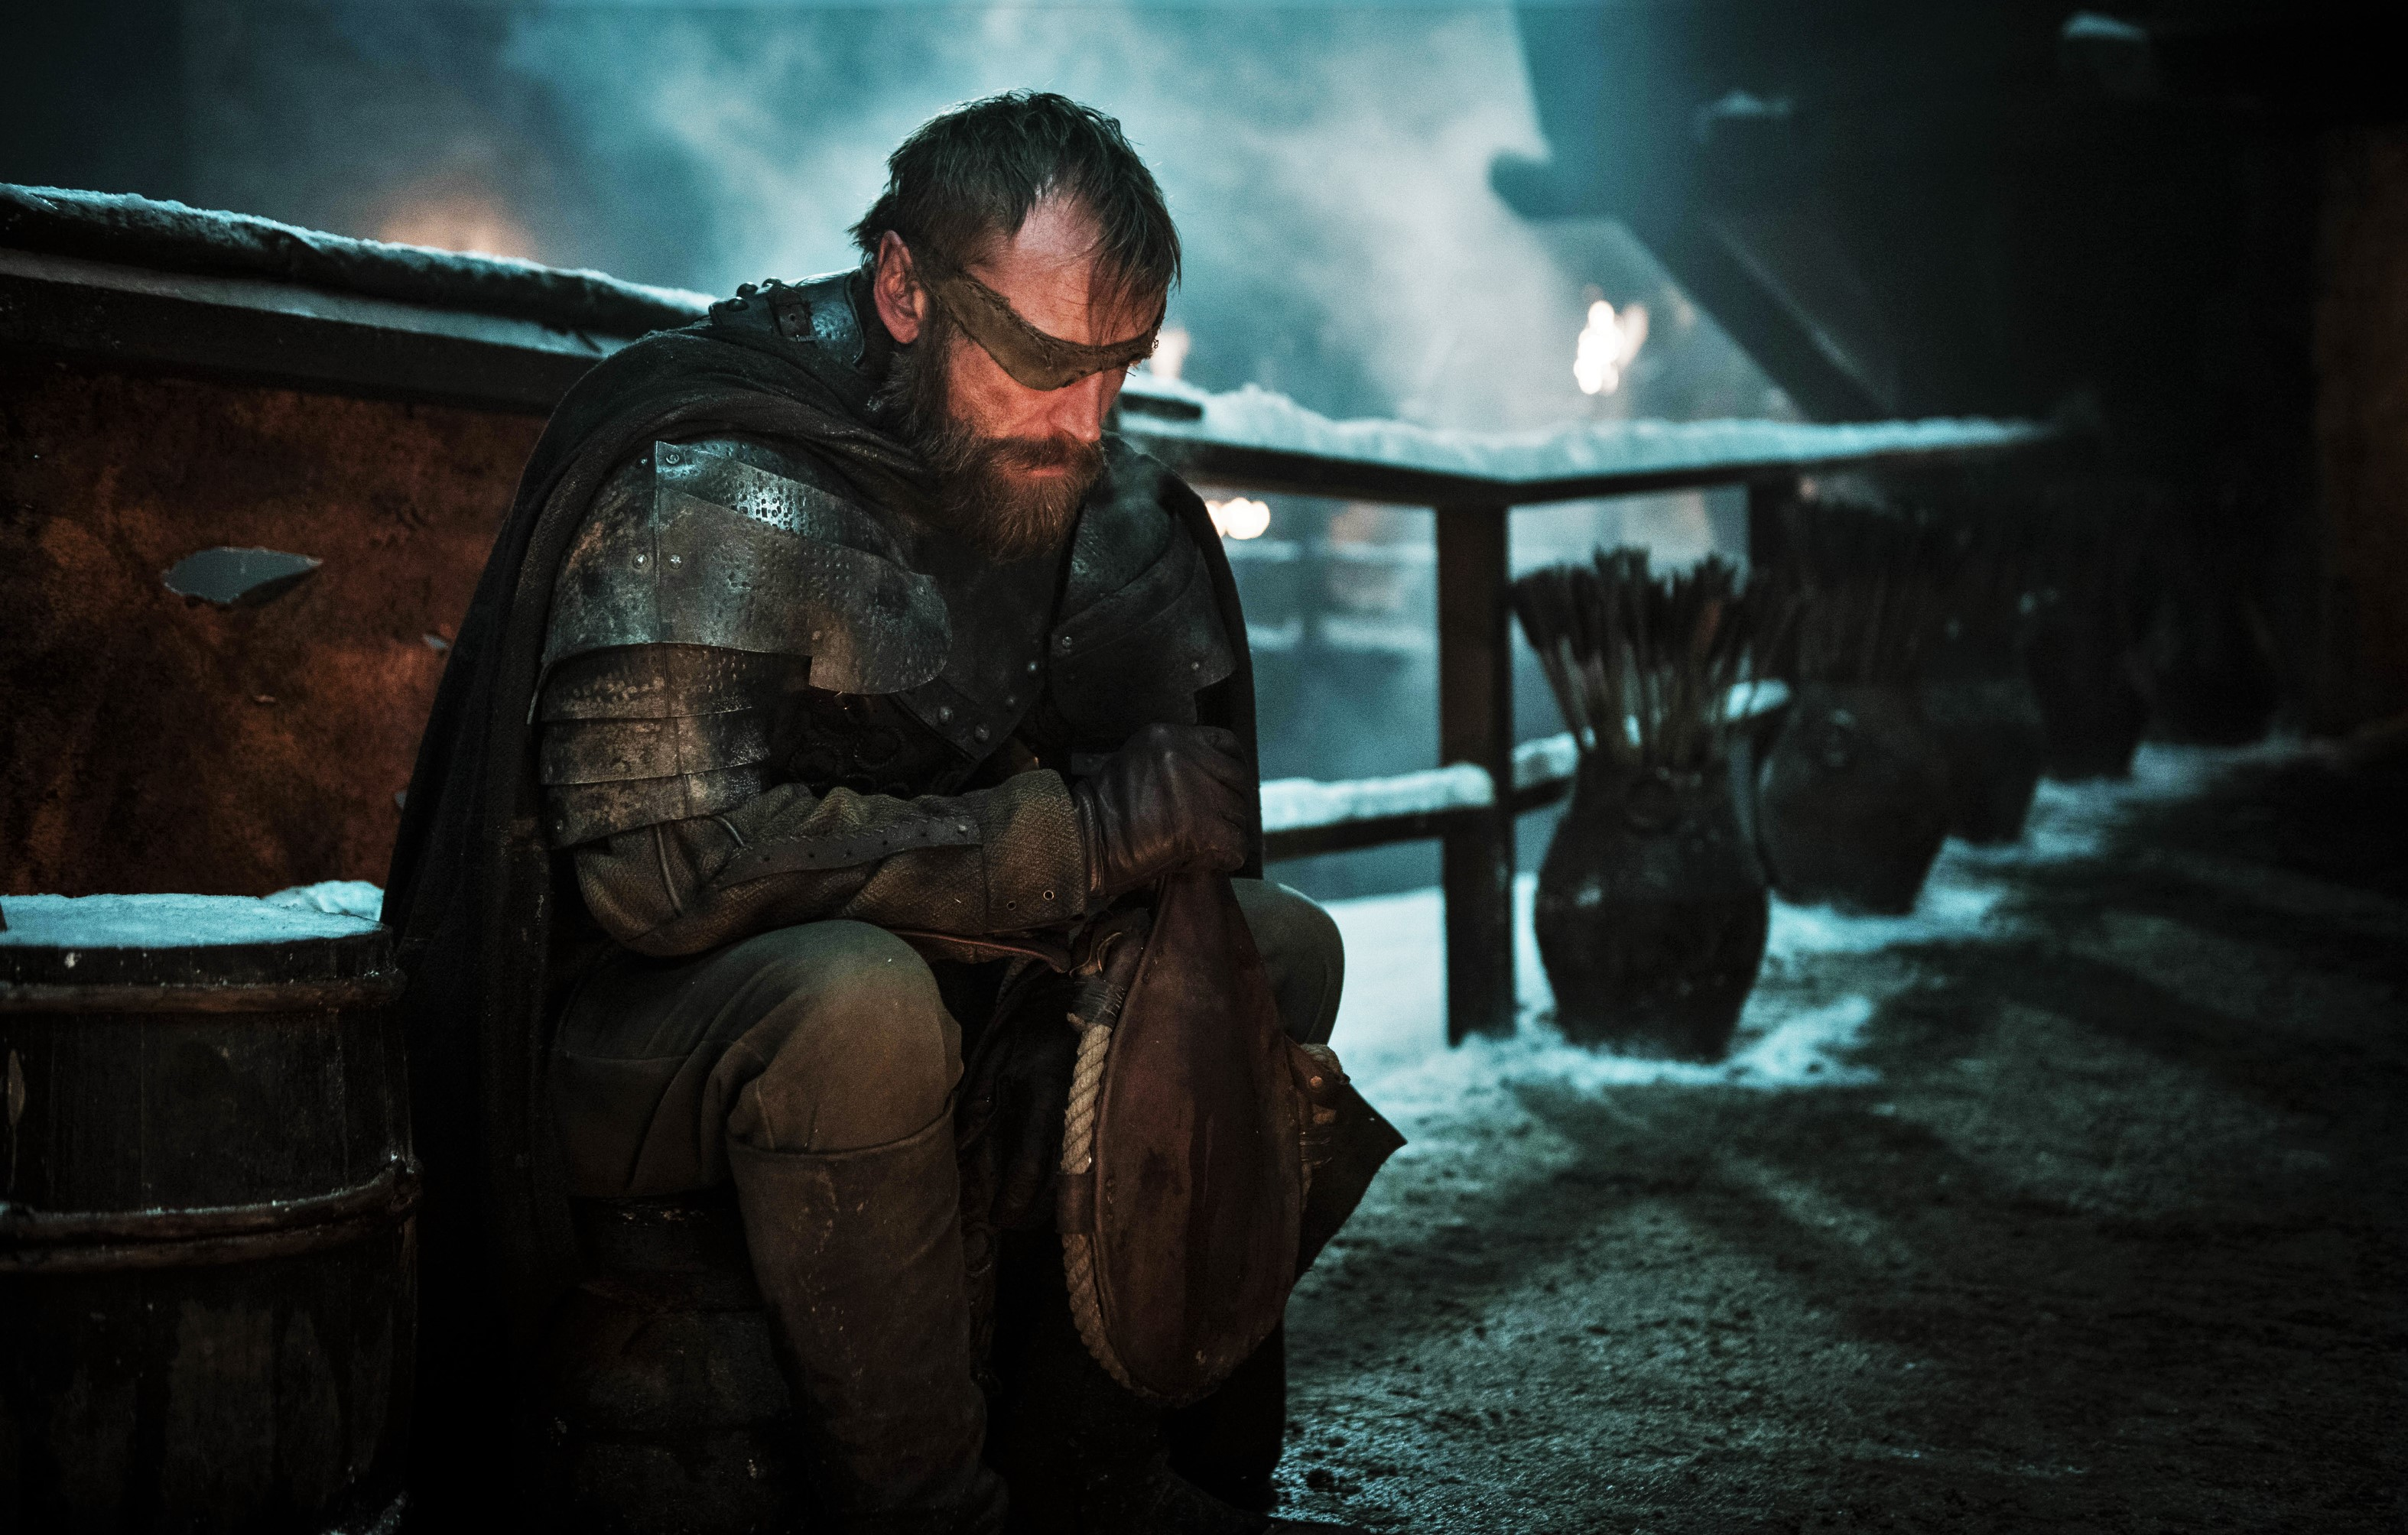 Beric Dondarrion 802 Season 8